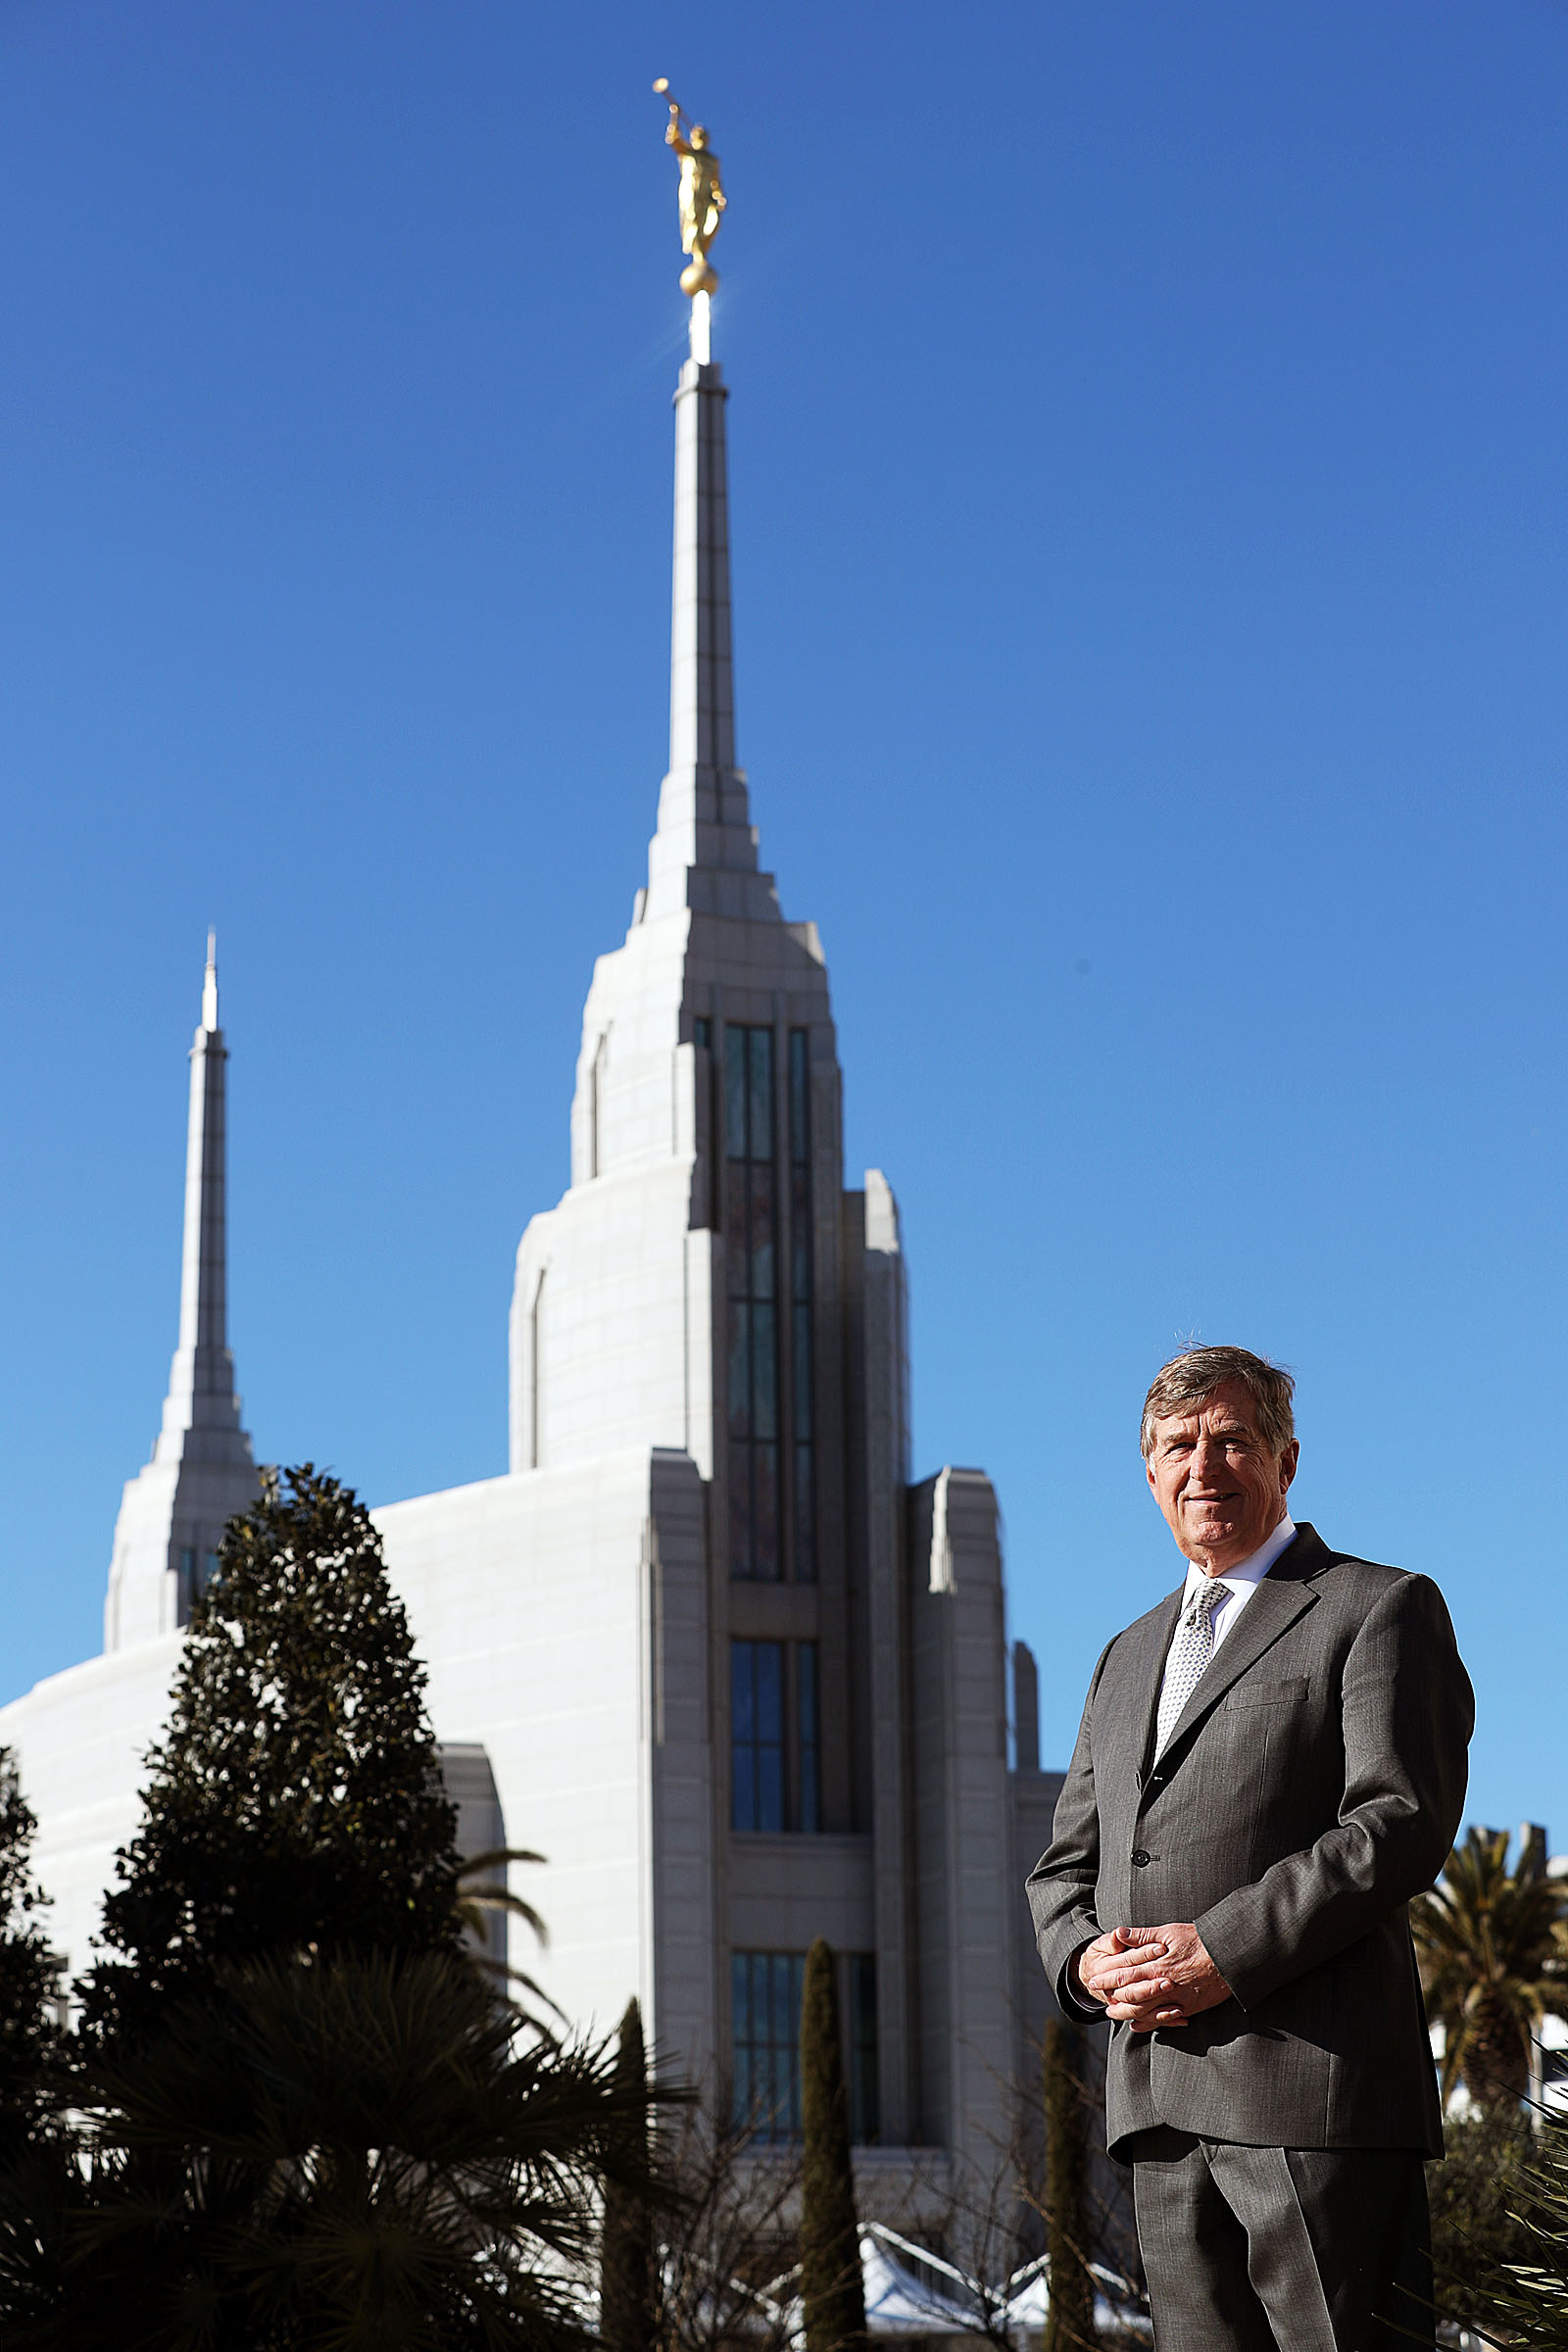 Niels Valentiner, architect of the Rome Italy Temple of The Church of Jesus Christ of Latter-day Saints, poses for a photo on Tuesday, Jan. 15, 2019.